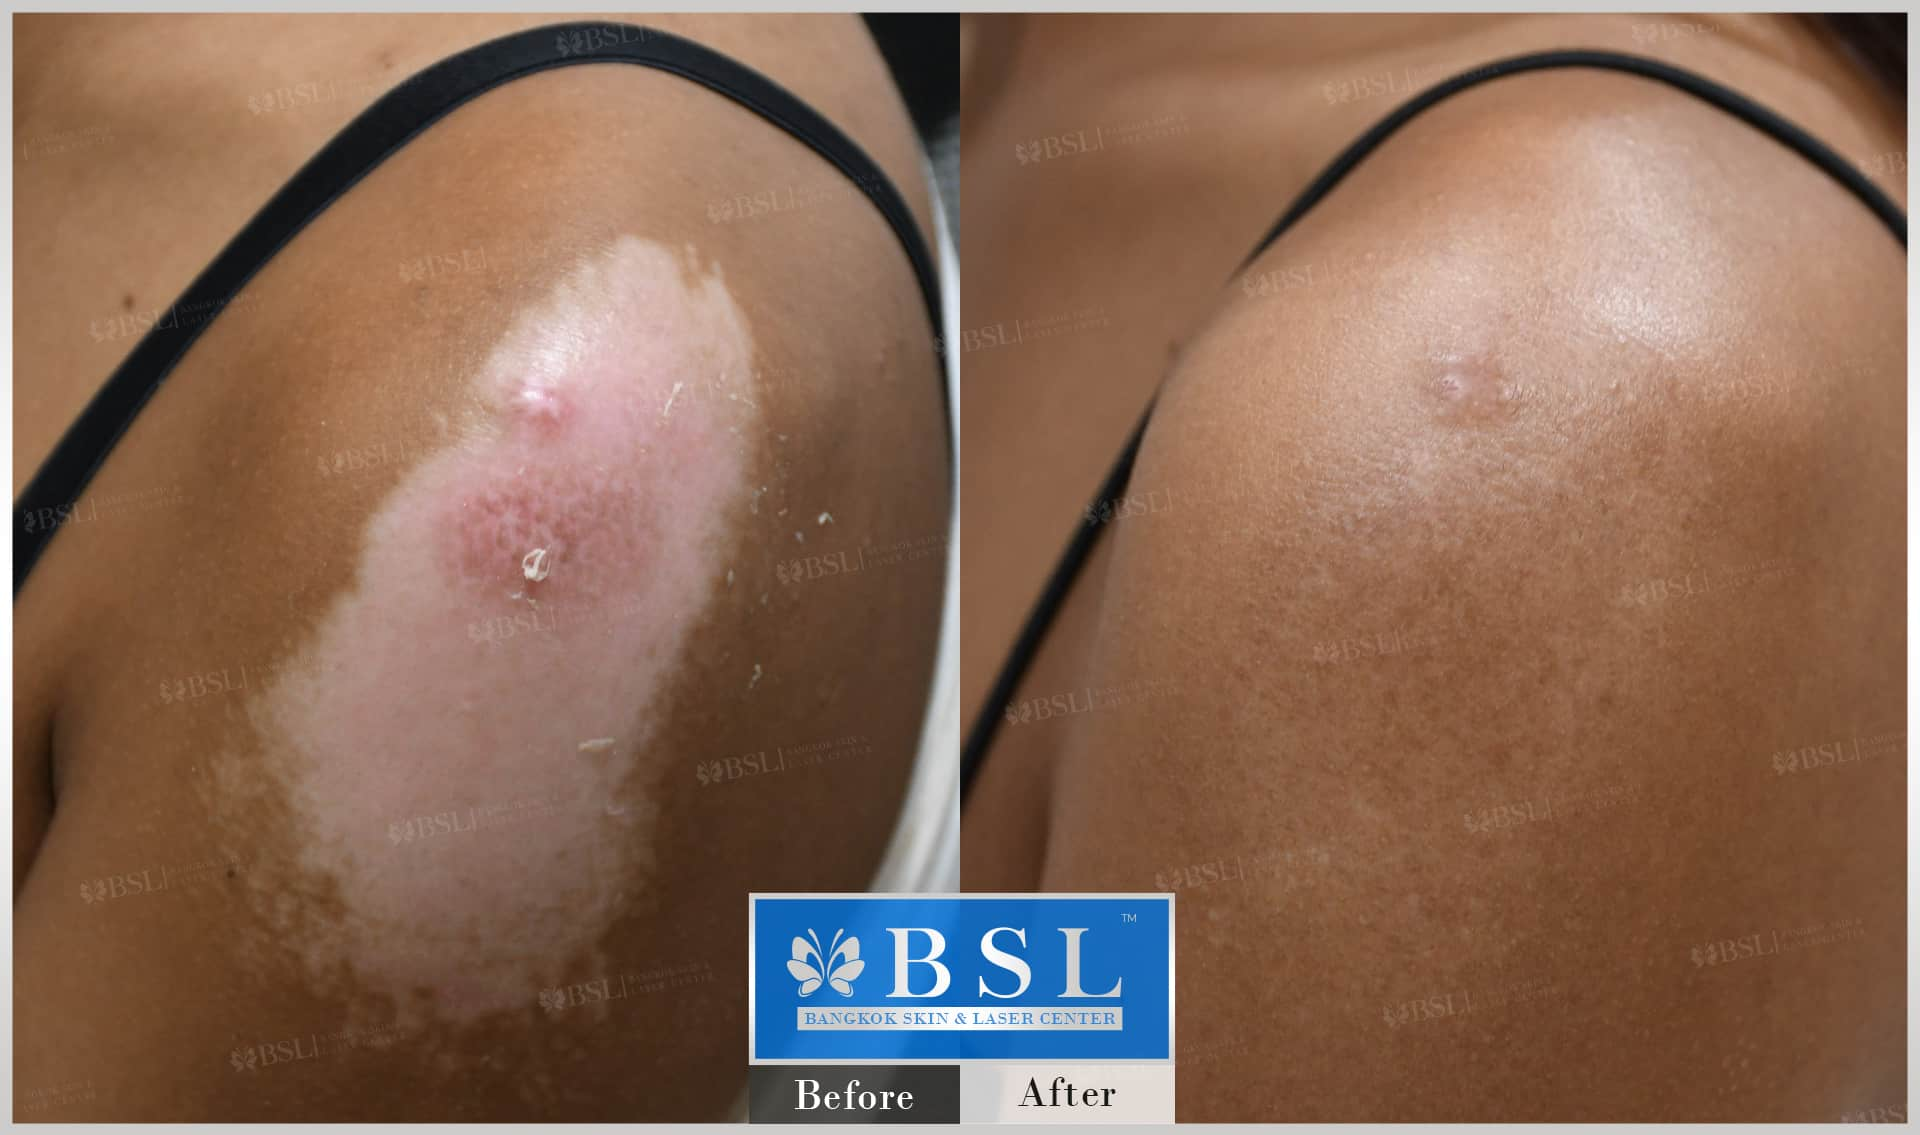 before-after-results-scar-treatment-016